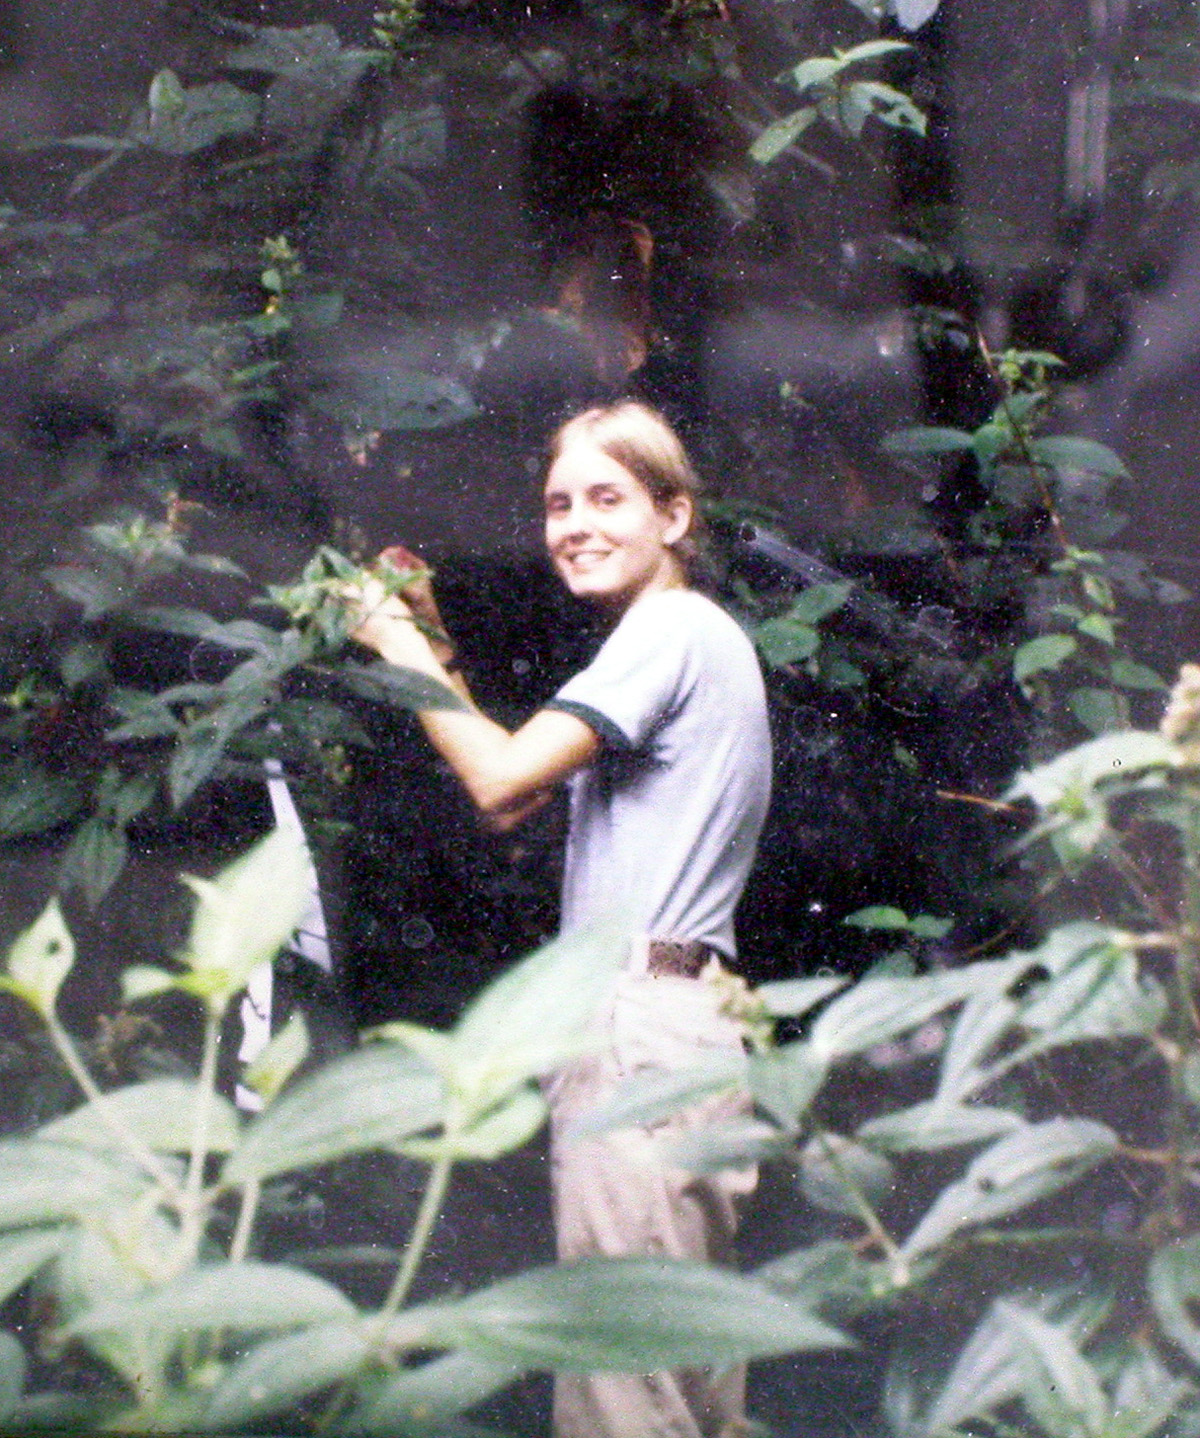 Dr. McDade, 1980 Panama – Smithsonian Tropical Research Institute.